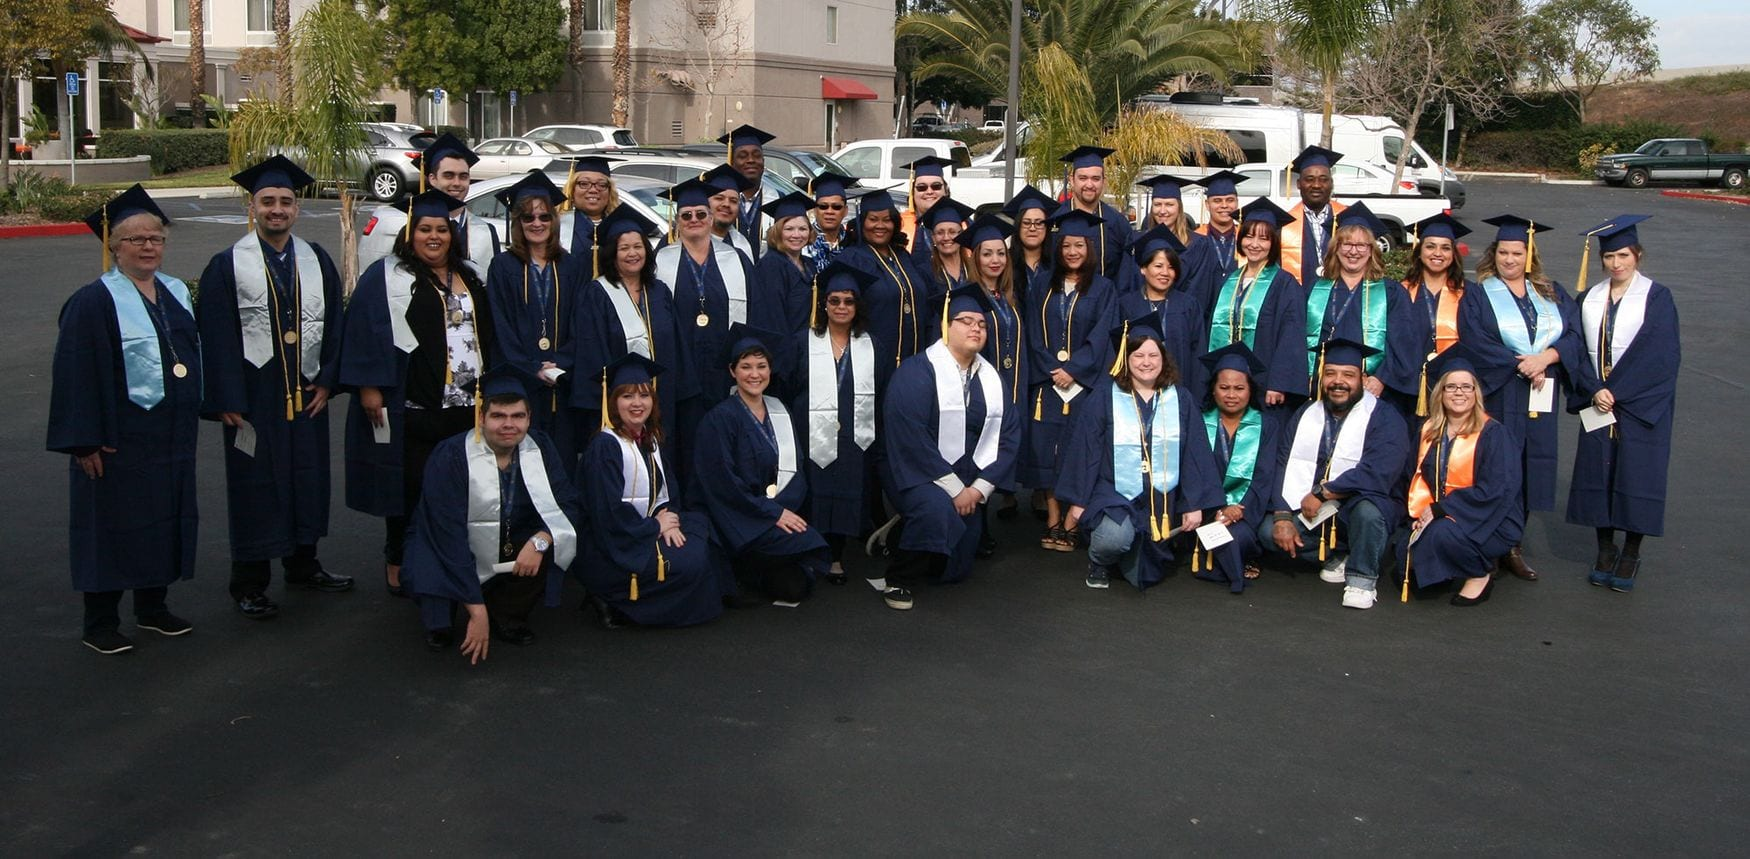 Laurus College Commencement - Class of 2015